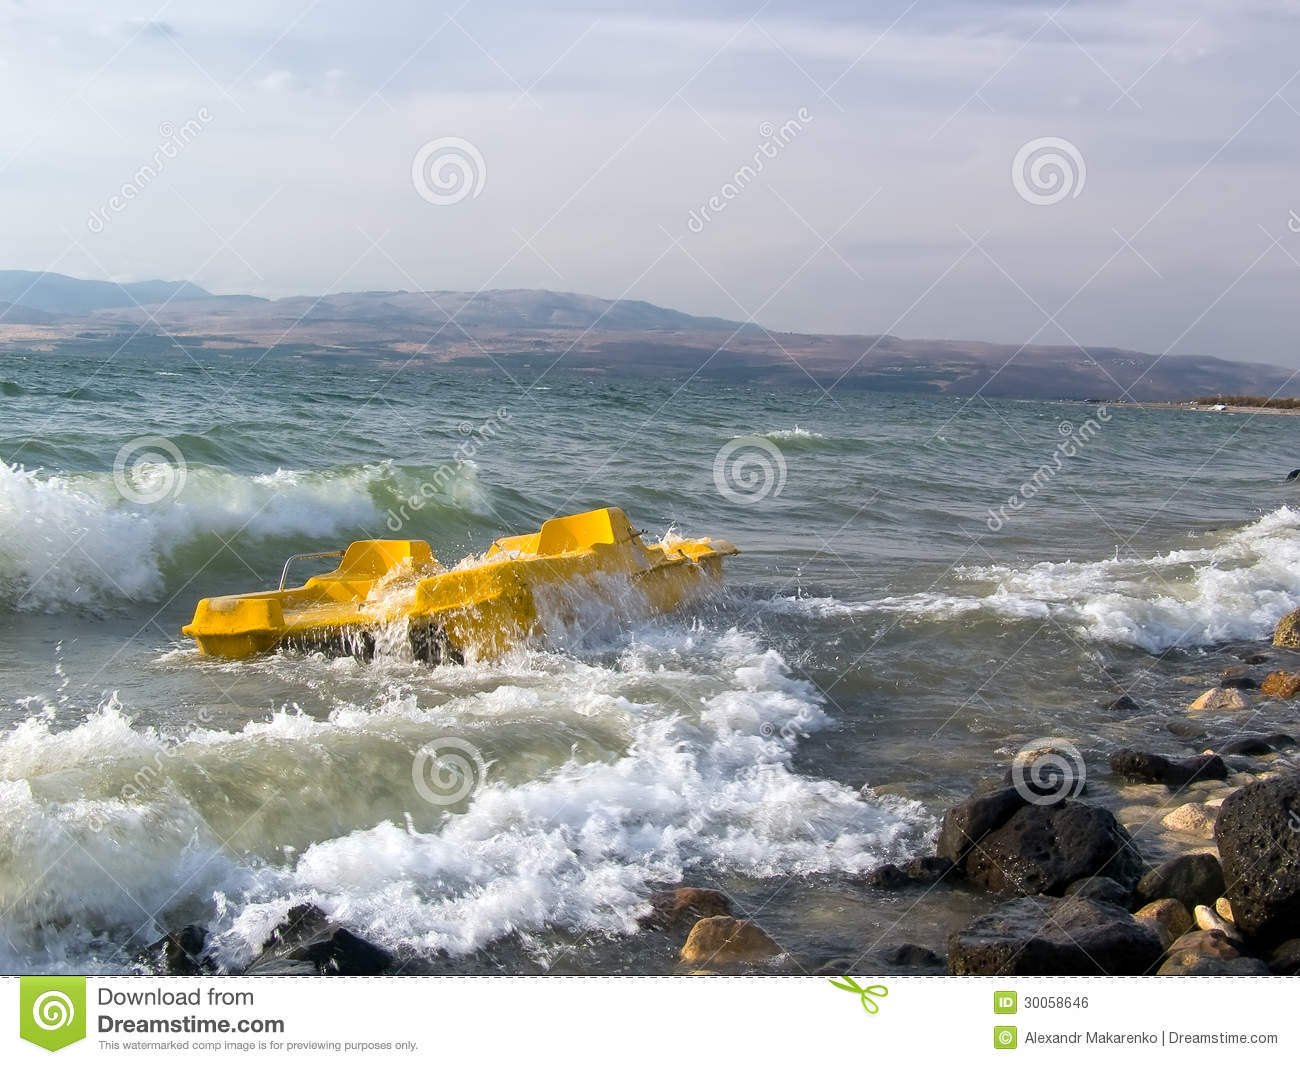 Storm on the sea of galilee israel stock photo image of storm on the sea of galilee israel publicscrutiny Images